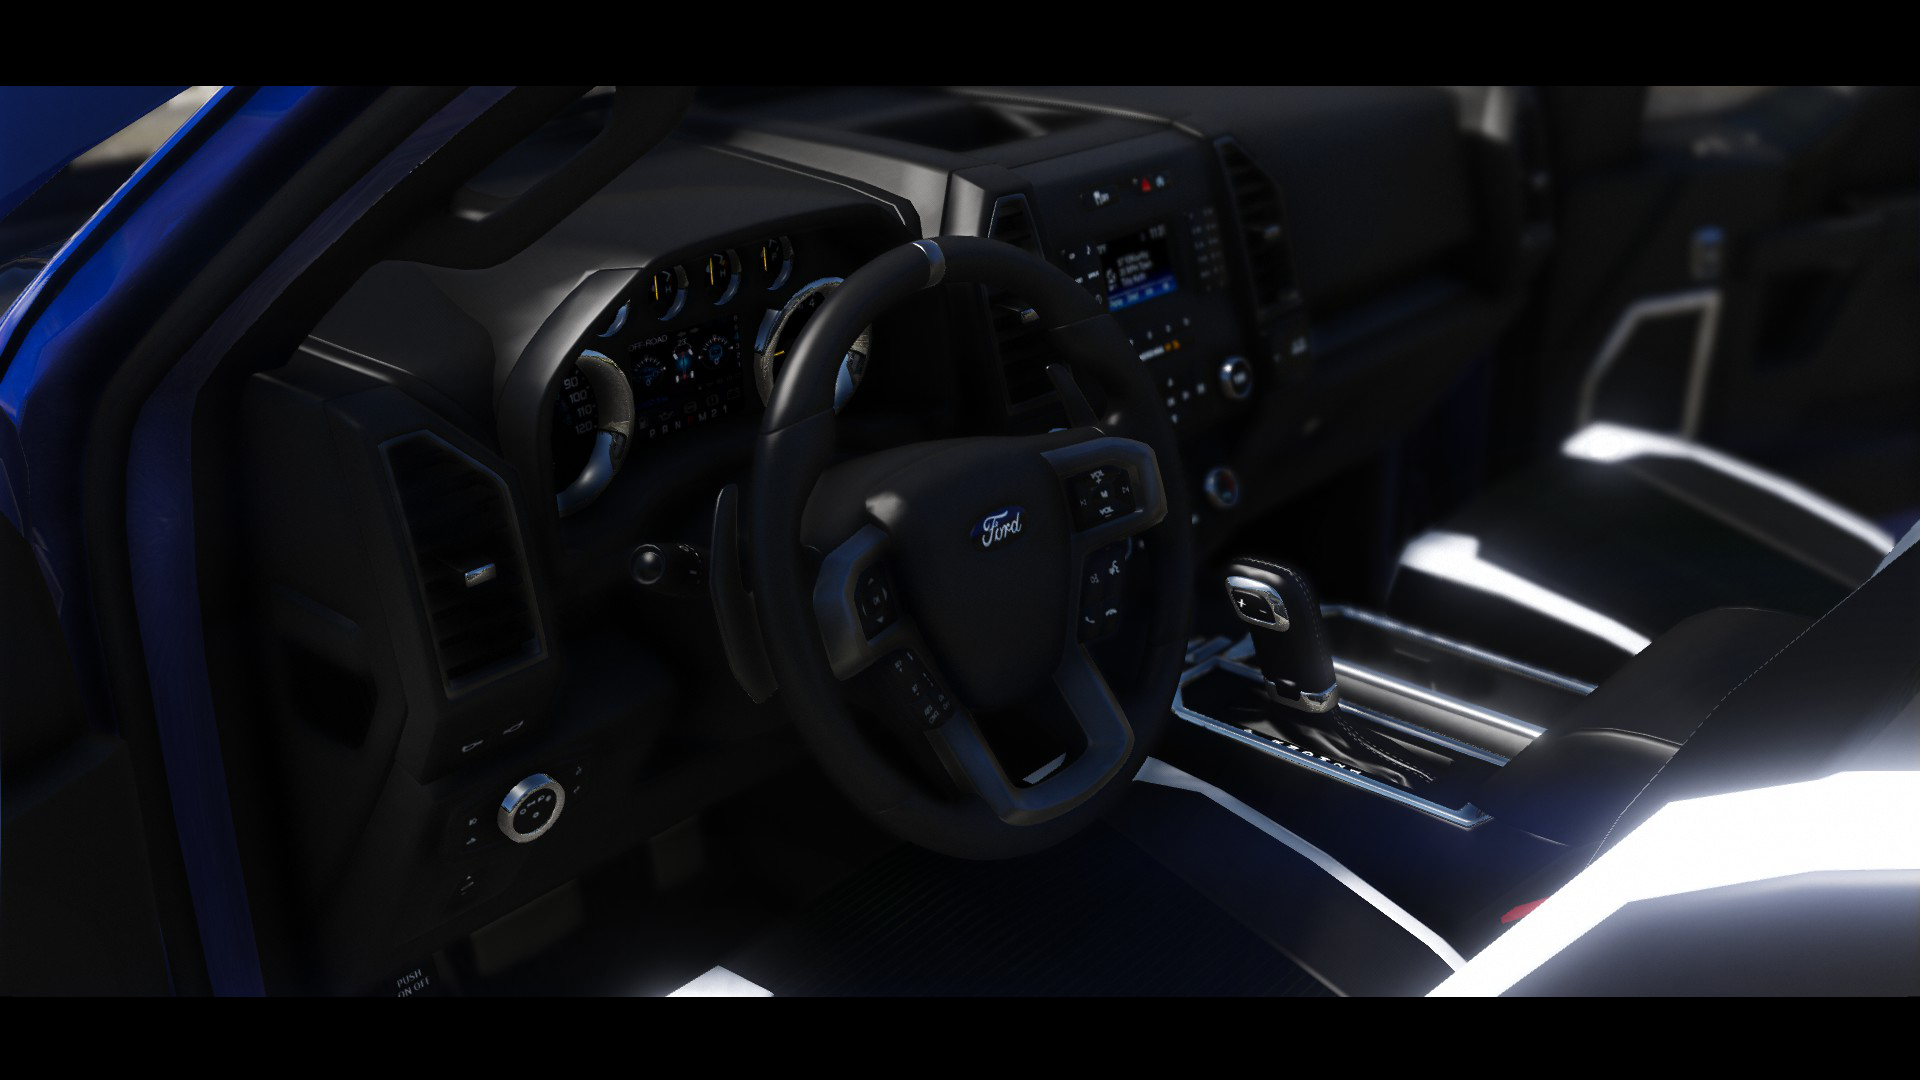 Ford Mustang Interior Led Lighting Americanmuscle Free